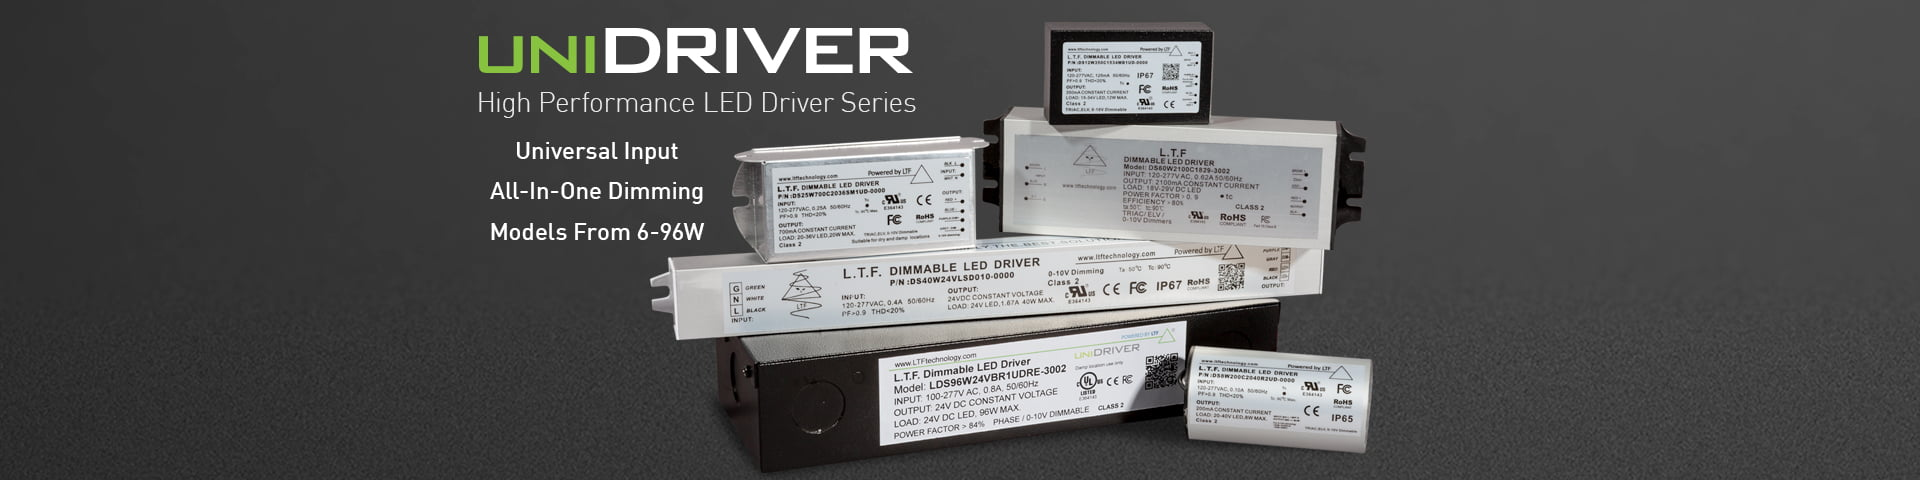 unidriver-flicker-free-elv-triac-0-10v-dimming-universal-input-120v-277vac-constant-current-constant-voltage-led-drivers